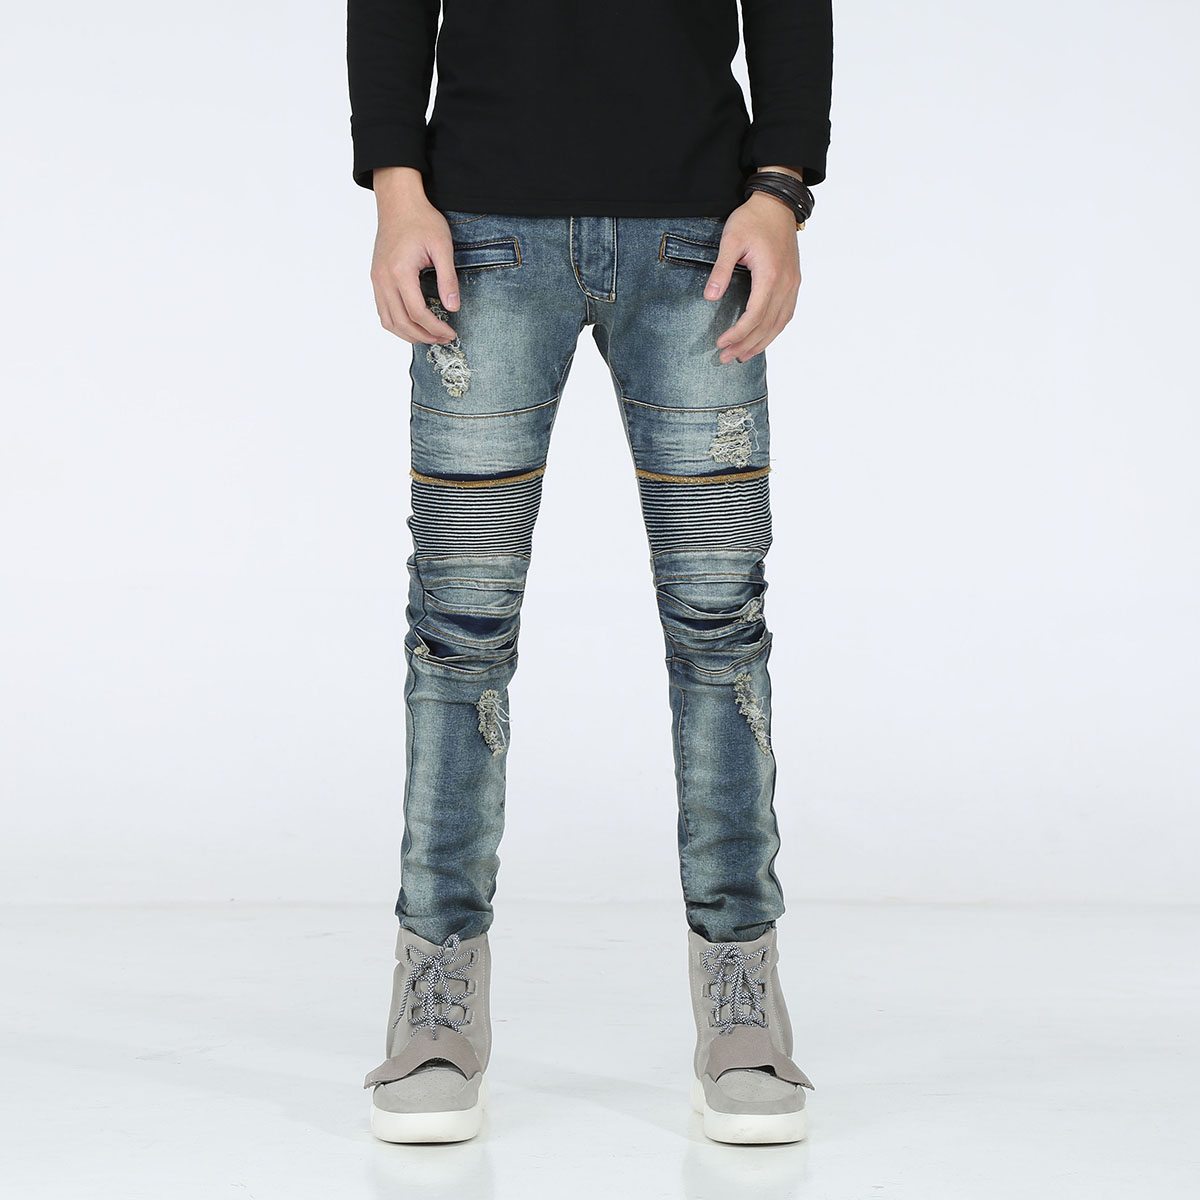 New Distressed Biker Jeans Men High Quality Fashion Mens Casual Slim Elastic Straight Denim Jeans Skinny Jeans Men Pants 29-42 2016 high quality mens jeans blue color printed jeans for men ripped button jeans casual pants quality cotton denim jeans